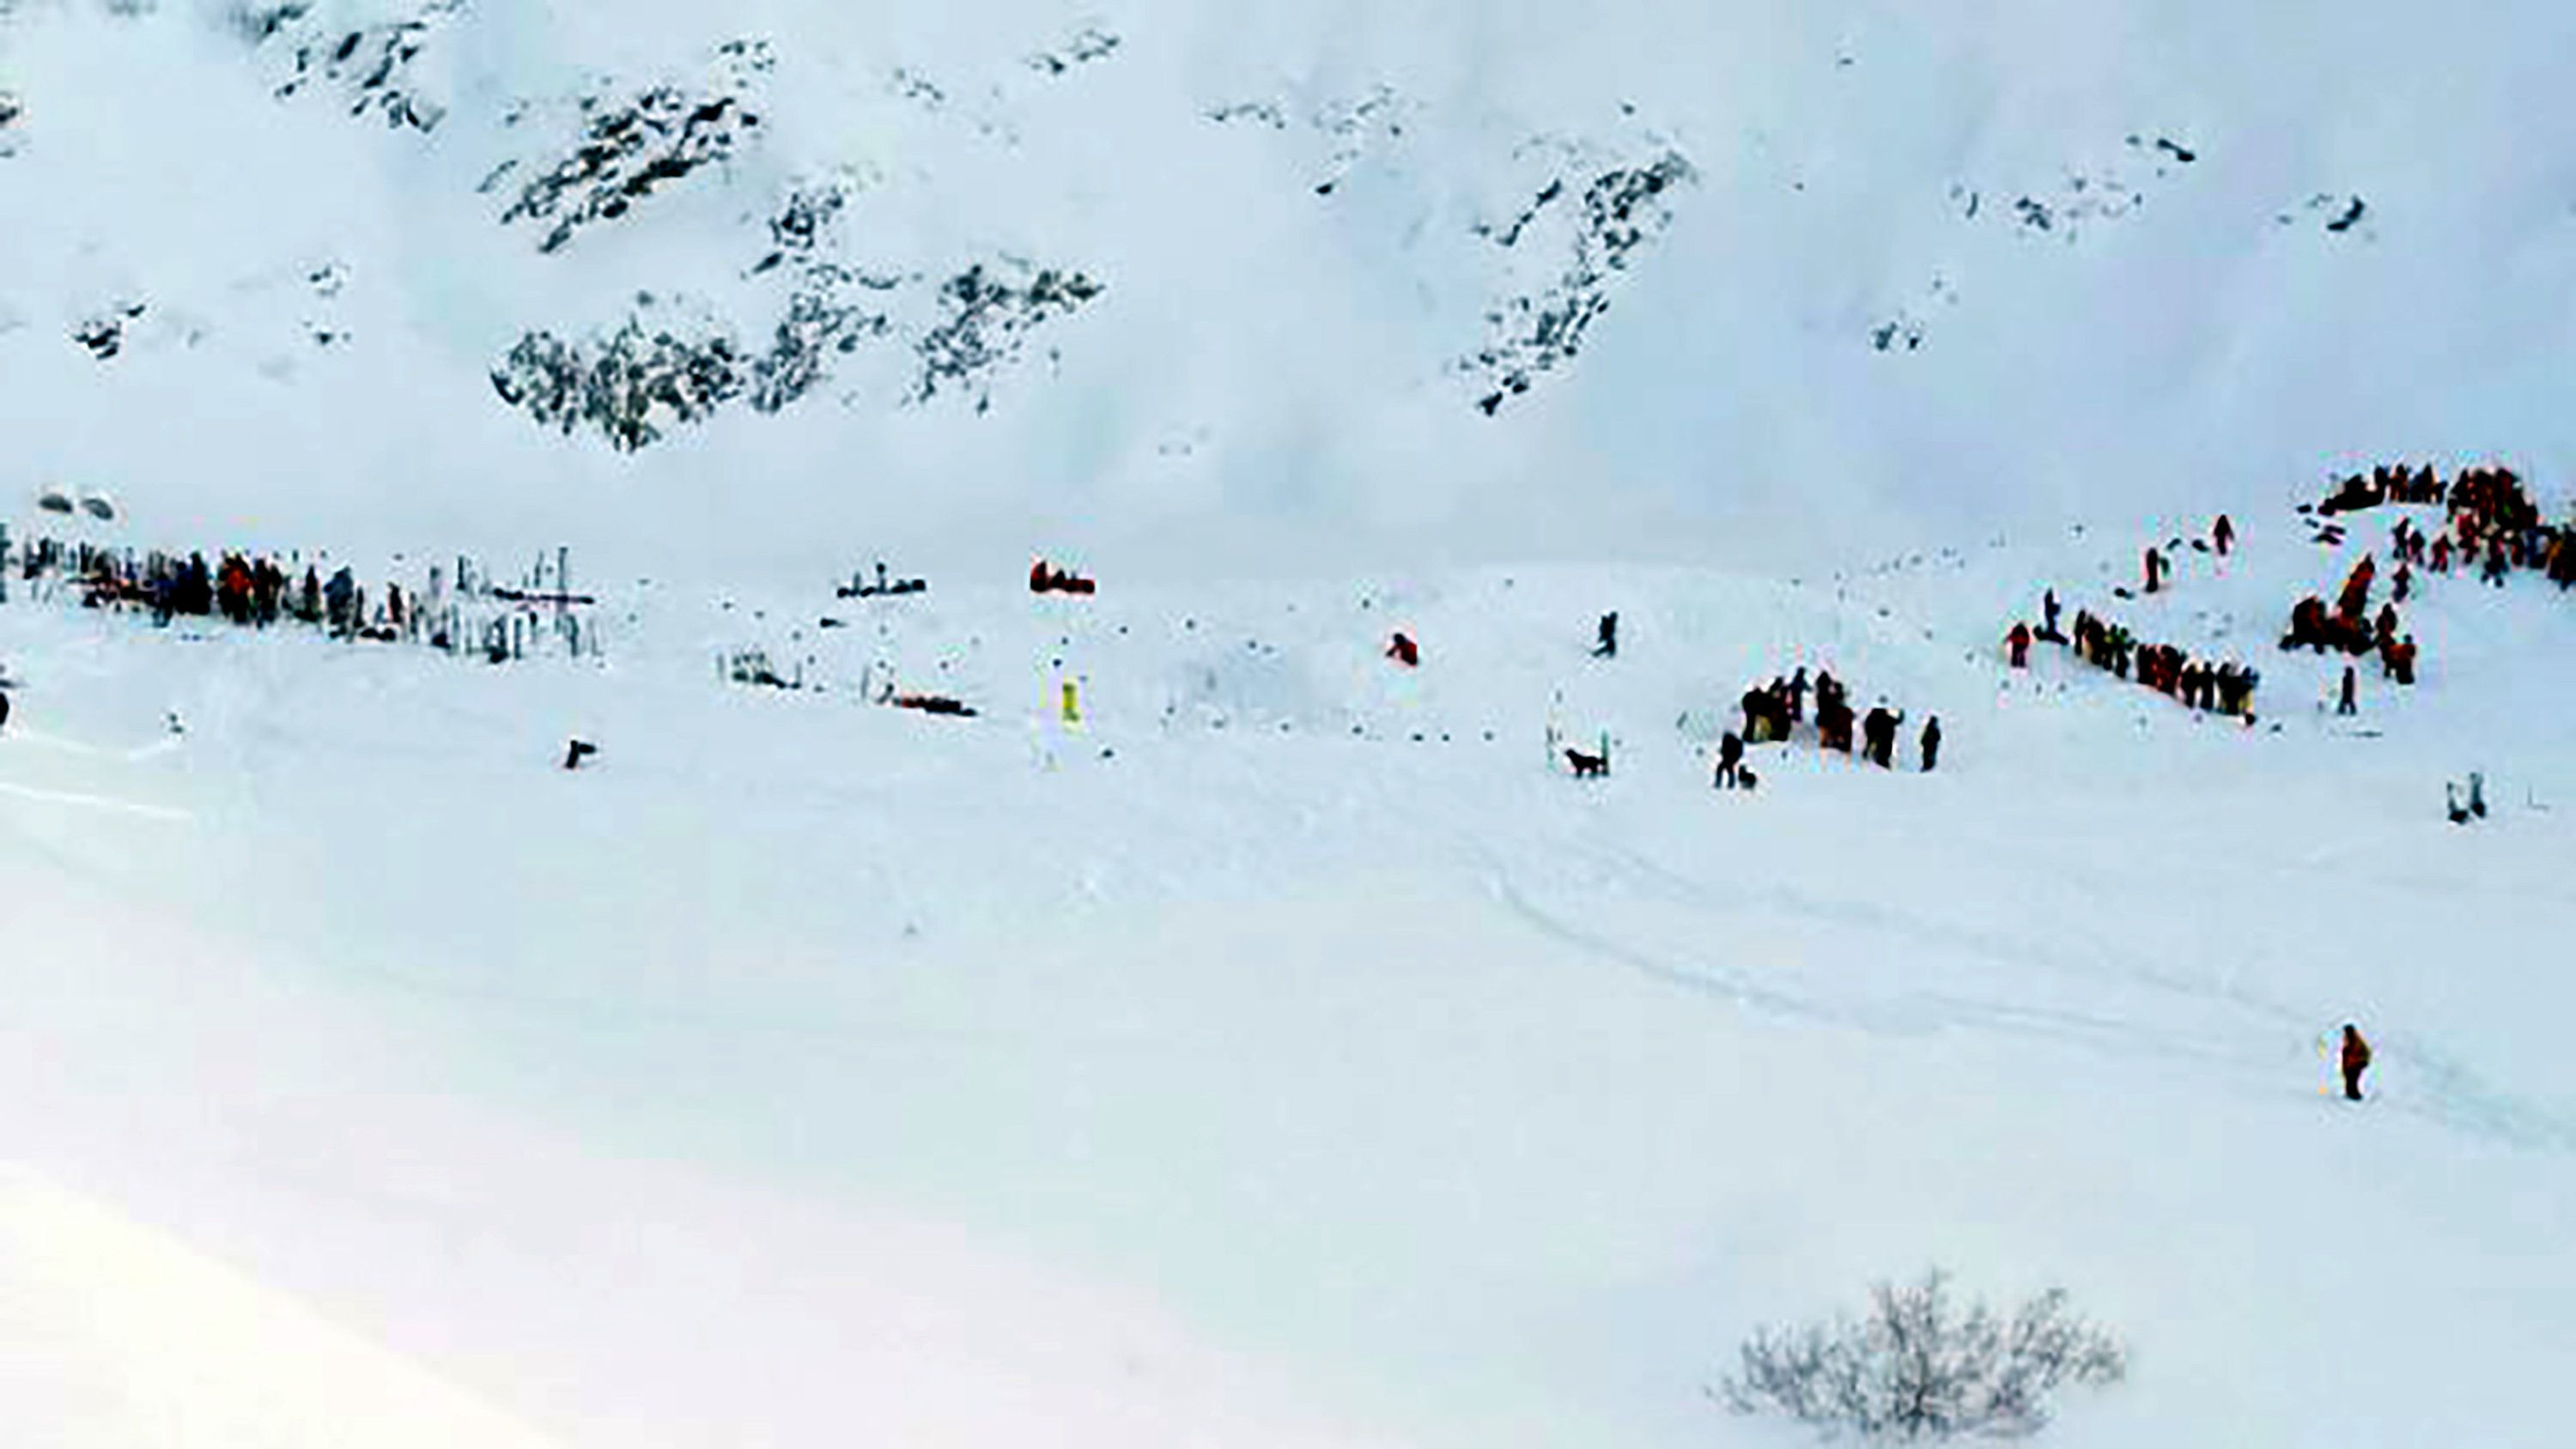 Rescuing teams gather for search and rescue operations on a piste at the avalanche site after skiers, including a group on a school outing, were swept away in the Les Deux Alpes resort in The French Alps on January 13, 2016. Two teenagers and a Ukrainian man were killed when an avalanche swept away skiers in the French Alps, including a group on a school outing, local officials said today. The avalanche hit a piste at the Deux-Alpes resort in eastern France that was still closed to the public, engulfing a group of nine French school children and their teacher from the city of Lyon, according to police sources. / AFP / STRINGER        (Photo credit should read STRINGER/AFP/Getty Images)